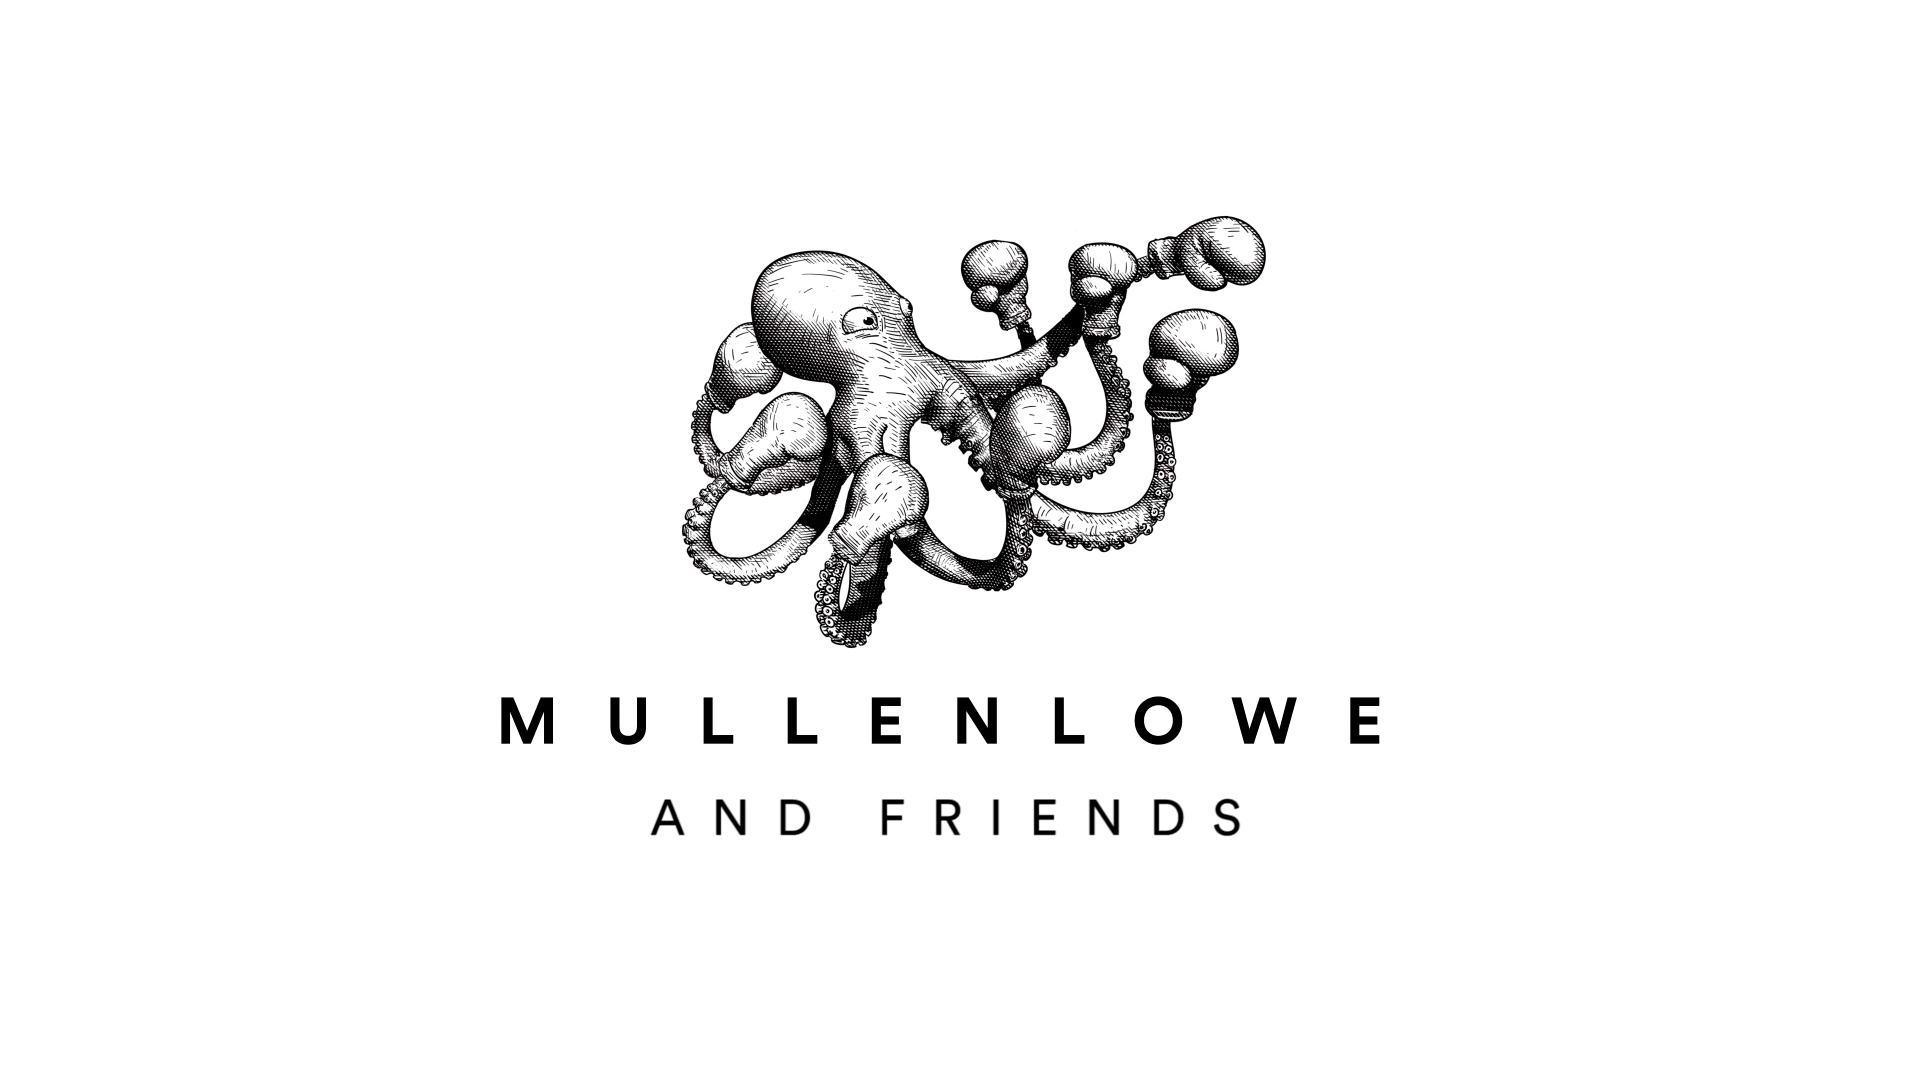 MullenLowe and Friends Approach, Purpose and Model